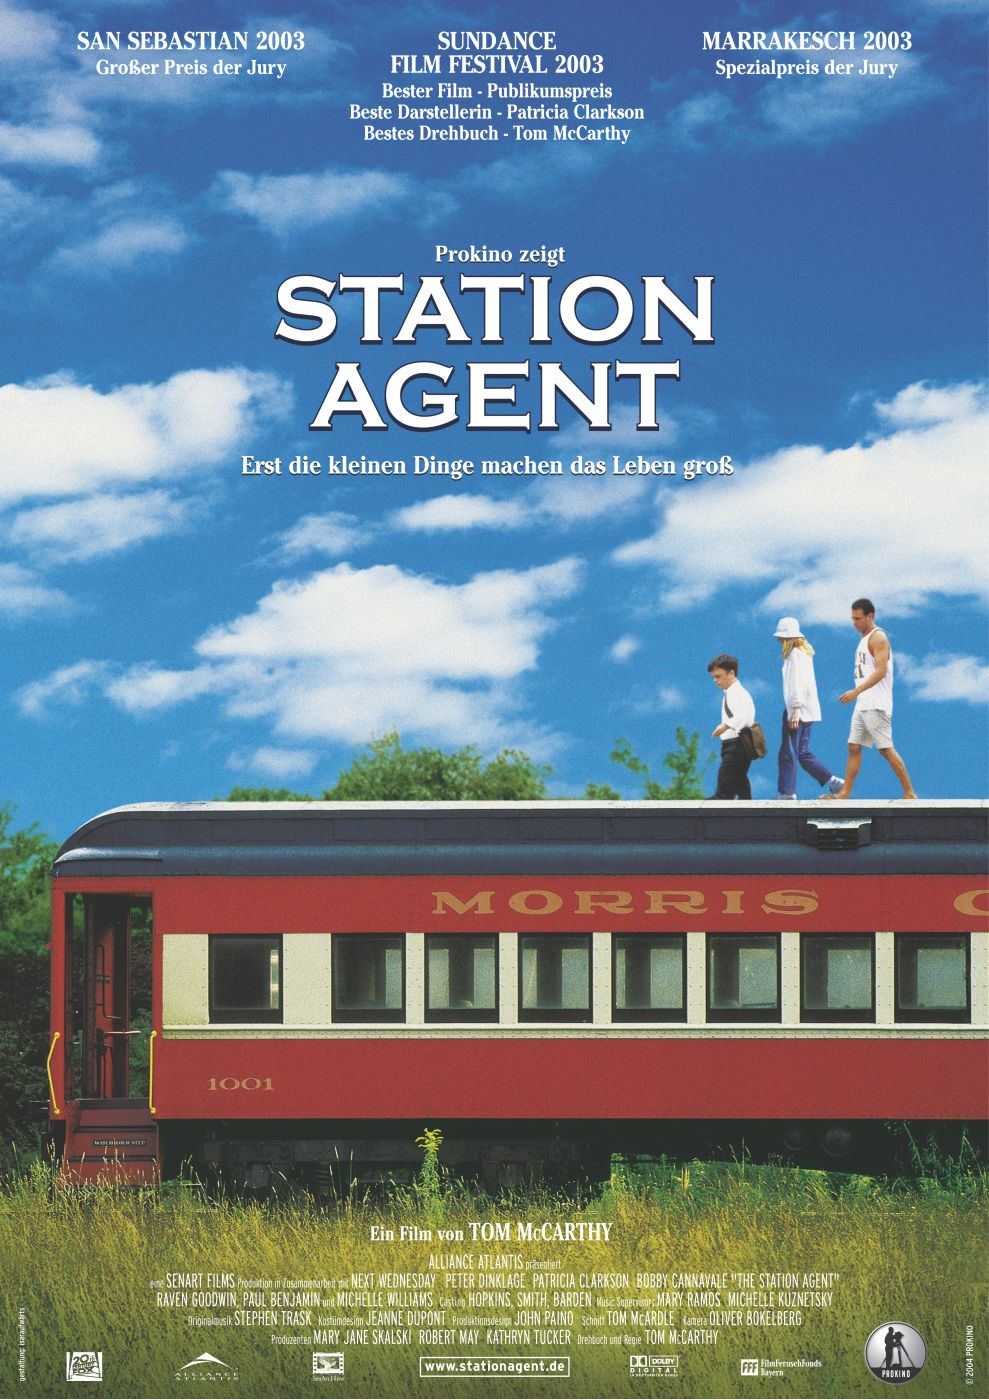 Download the station agent